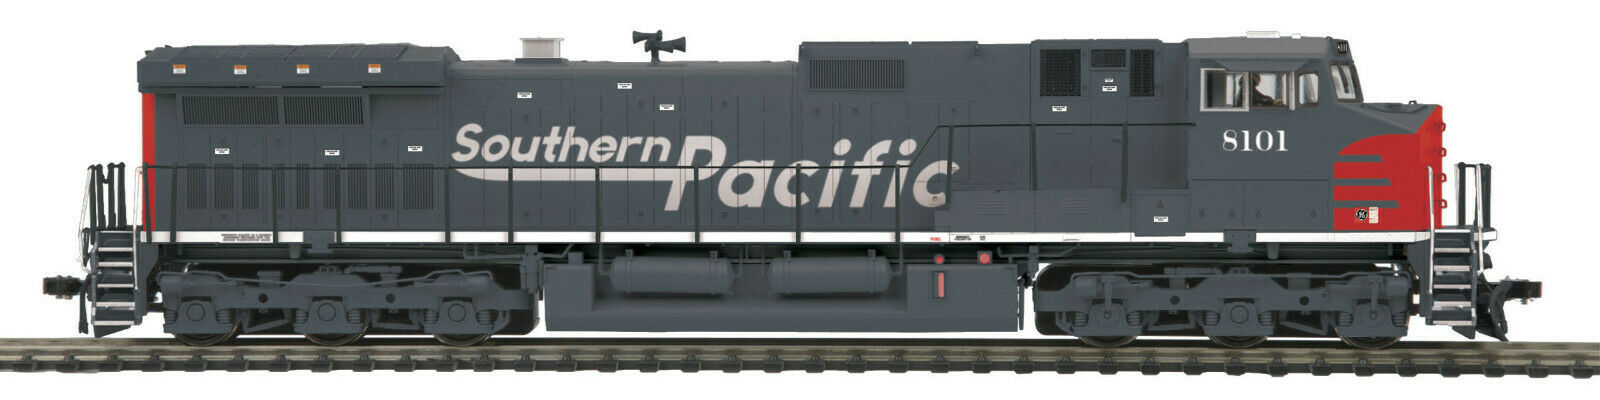 HO MTH Southern Pacific Dash-9 Diesel for 2 Rail DCC Ready 80-2305-0